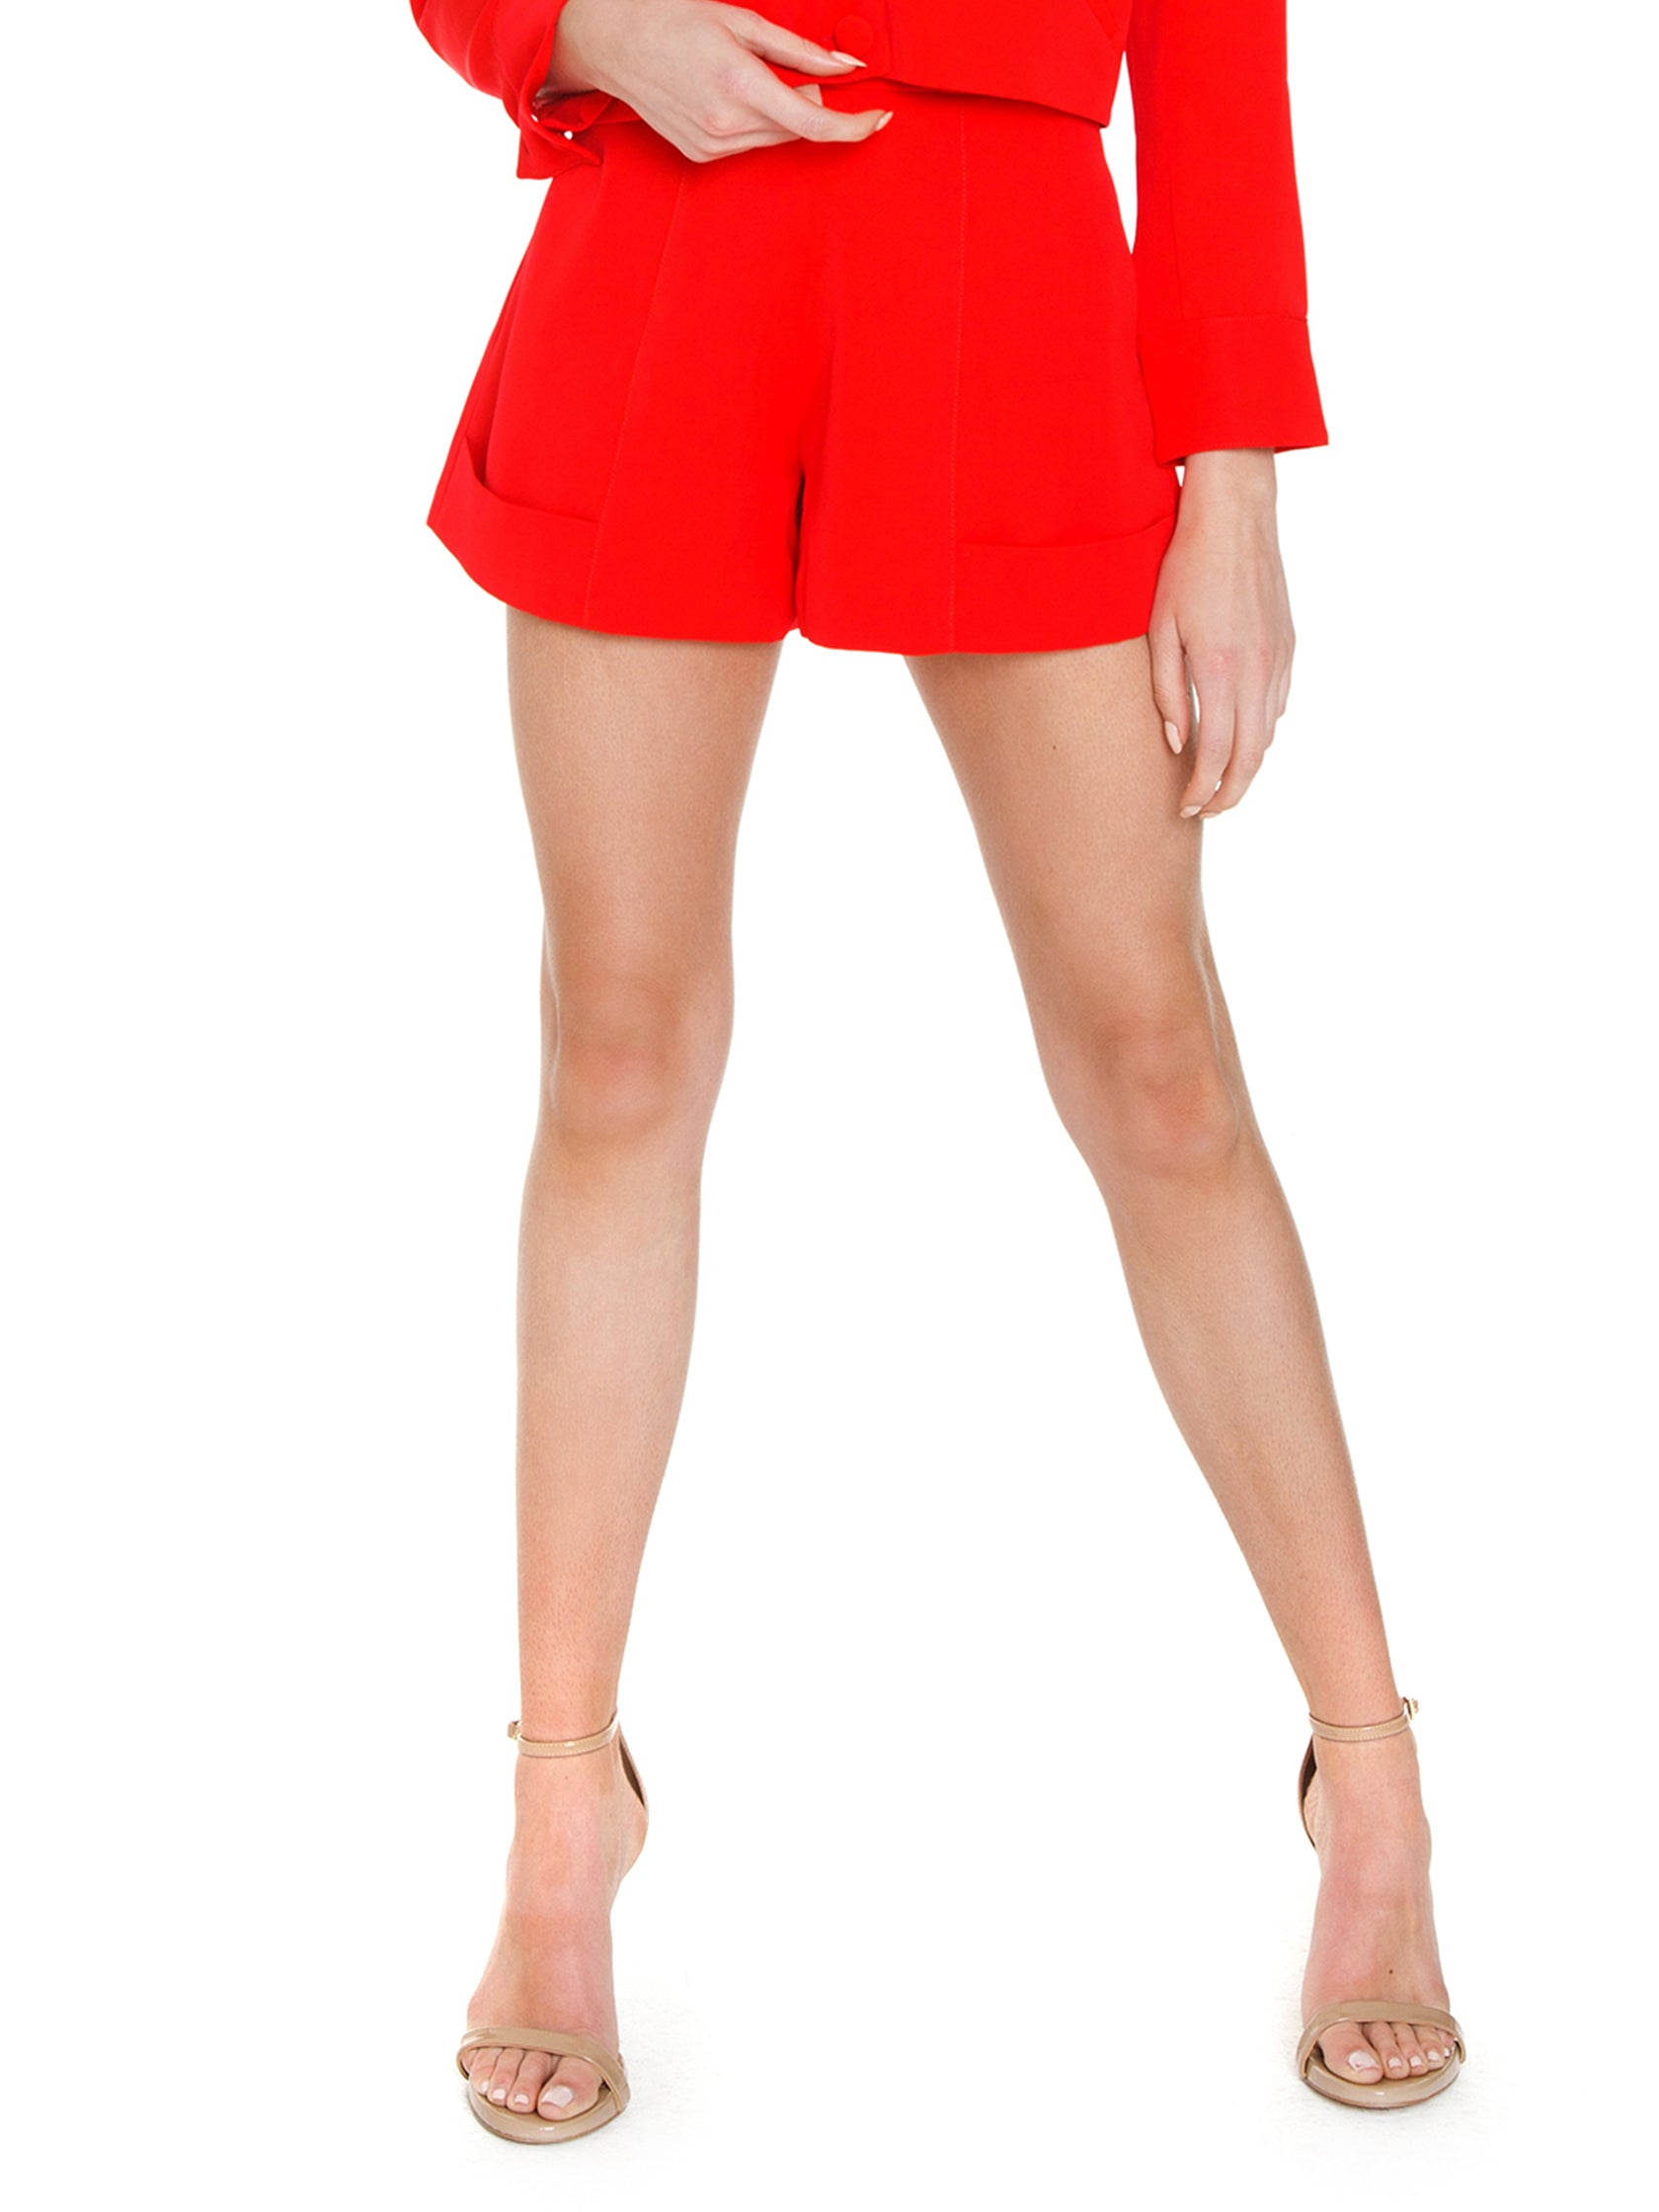 Woman wearing a shorts rental from FLETCH called Brooklyn High-waisted Shorts